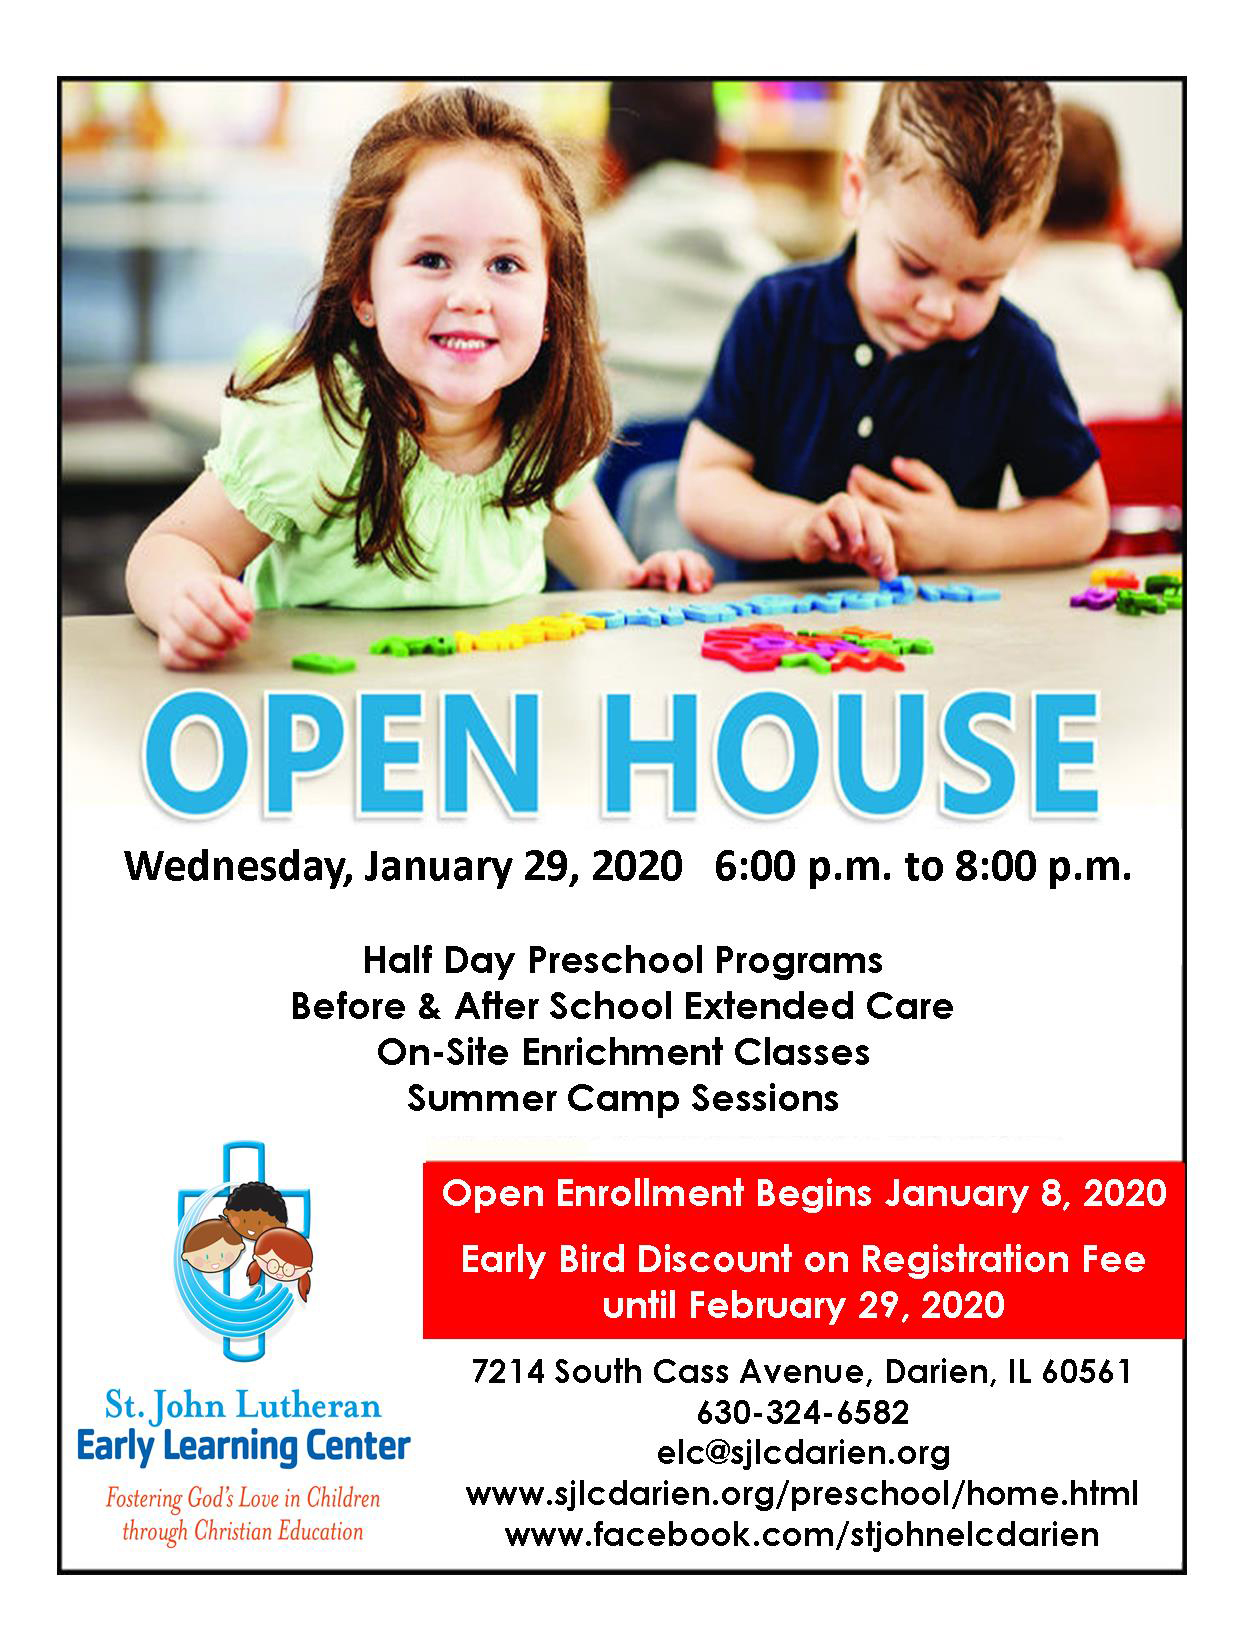 ELC Open House 2020 Poster